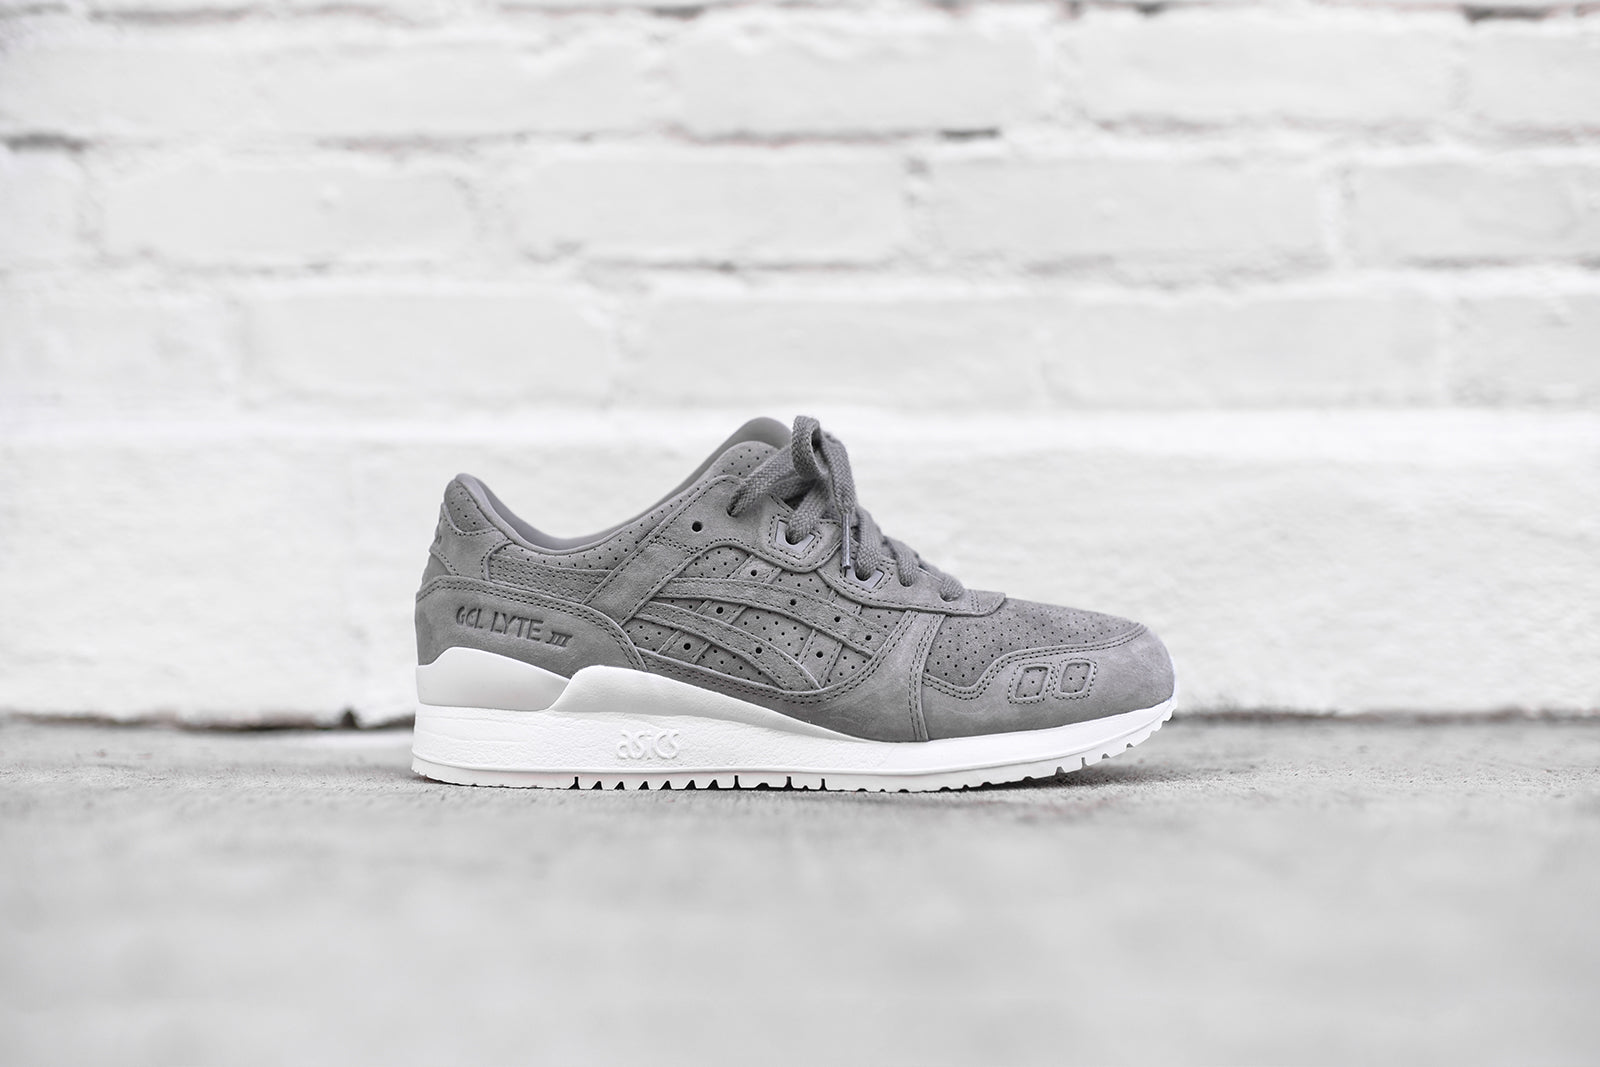 lowest price 6874f bdf23 Asics Gel-Lyte III Pack – Kith